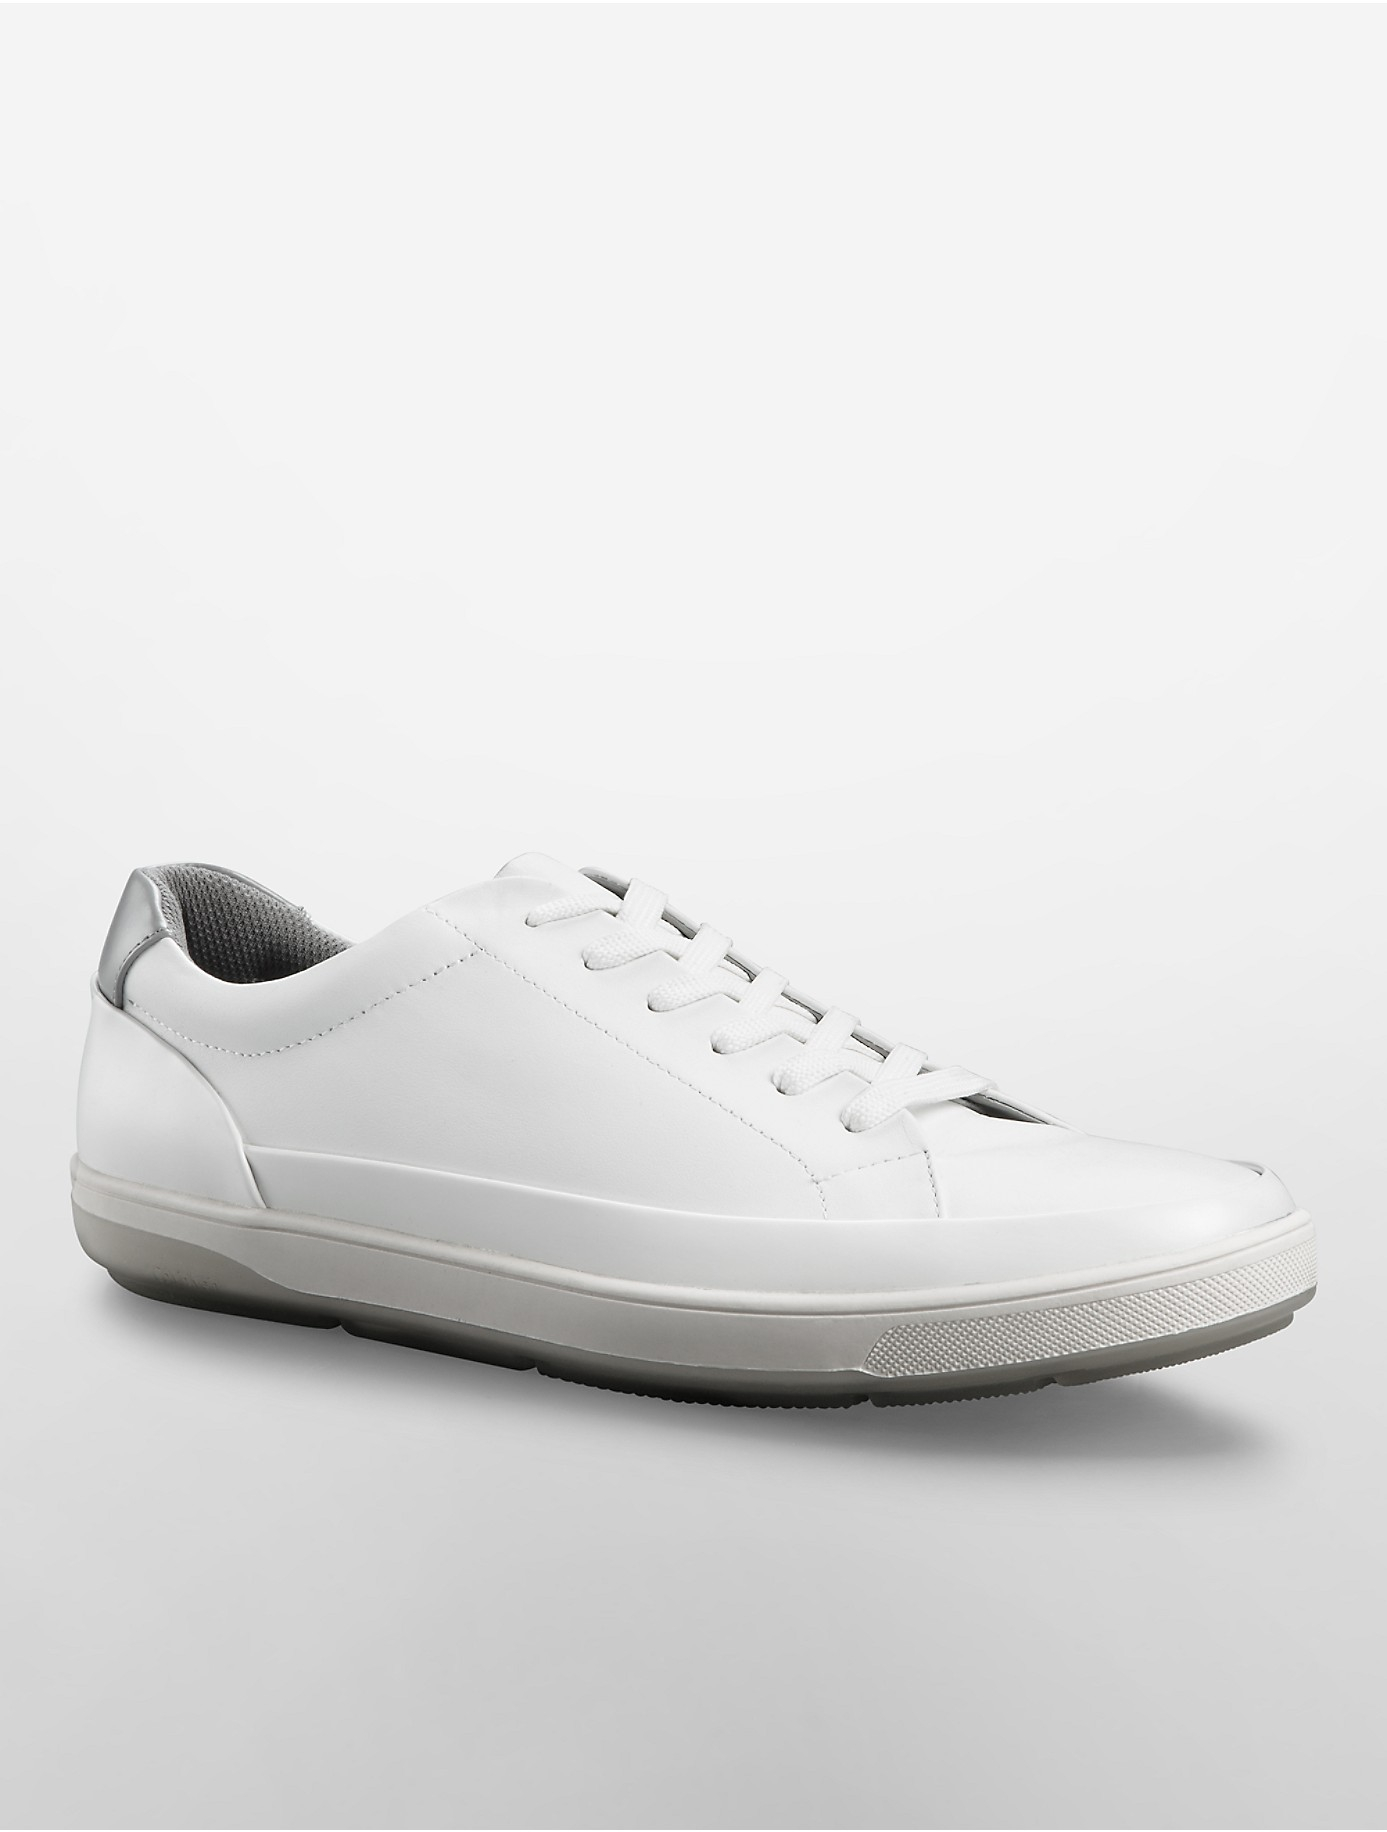 Lyst - Calvin Klein White Label Ward Sneaker in White for Men